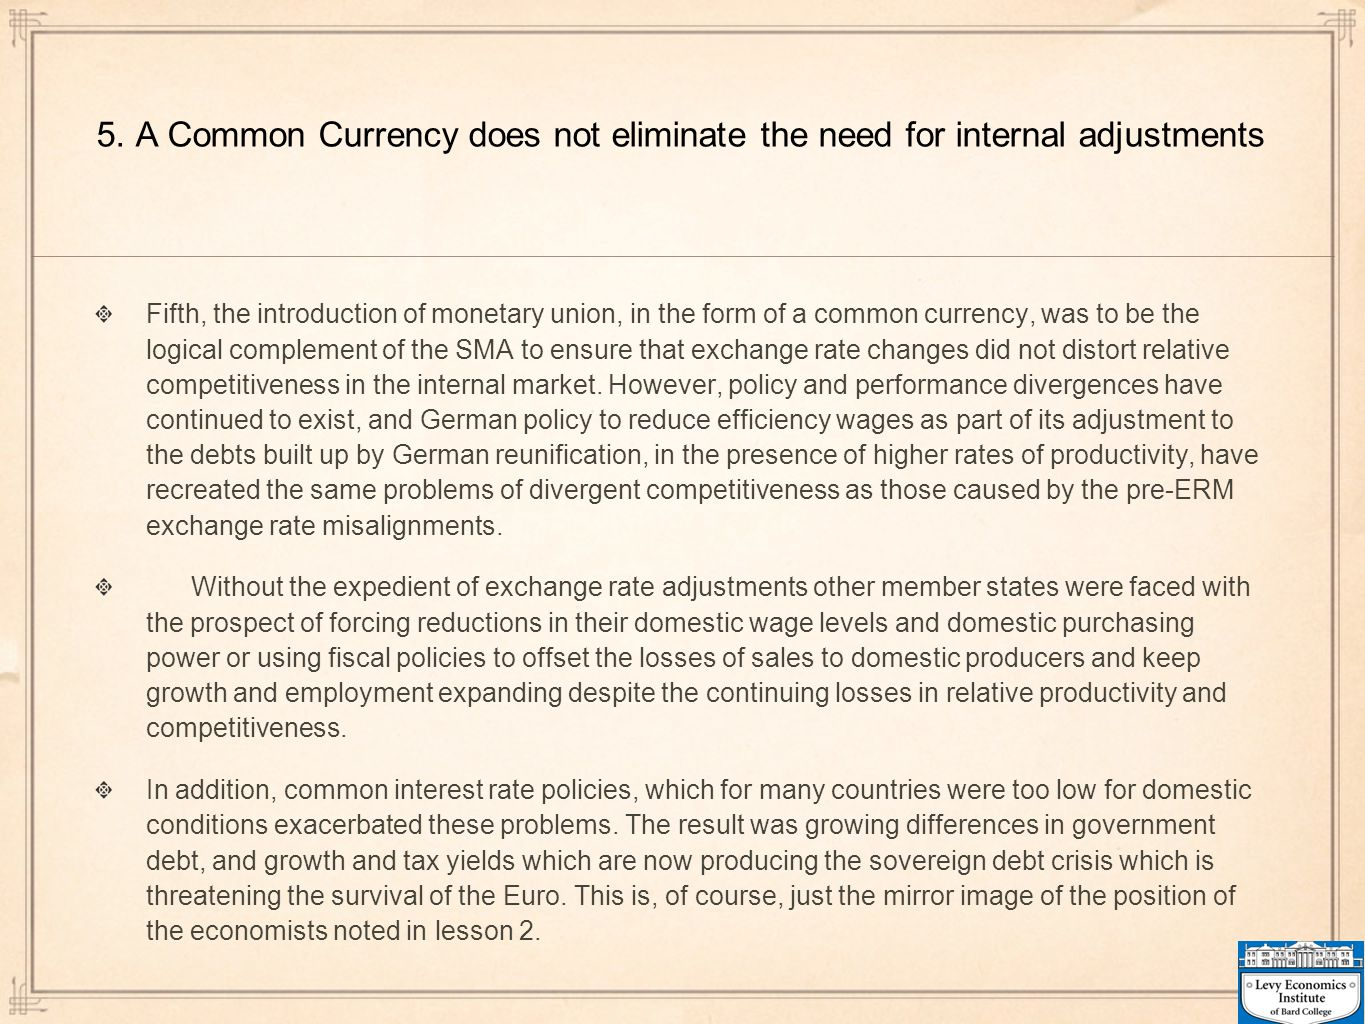 5. A Common Currency does not eliminate the need for internal adjustments